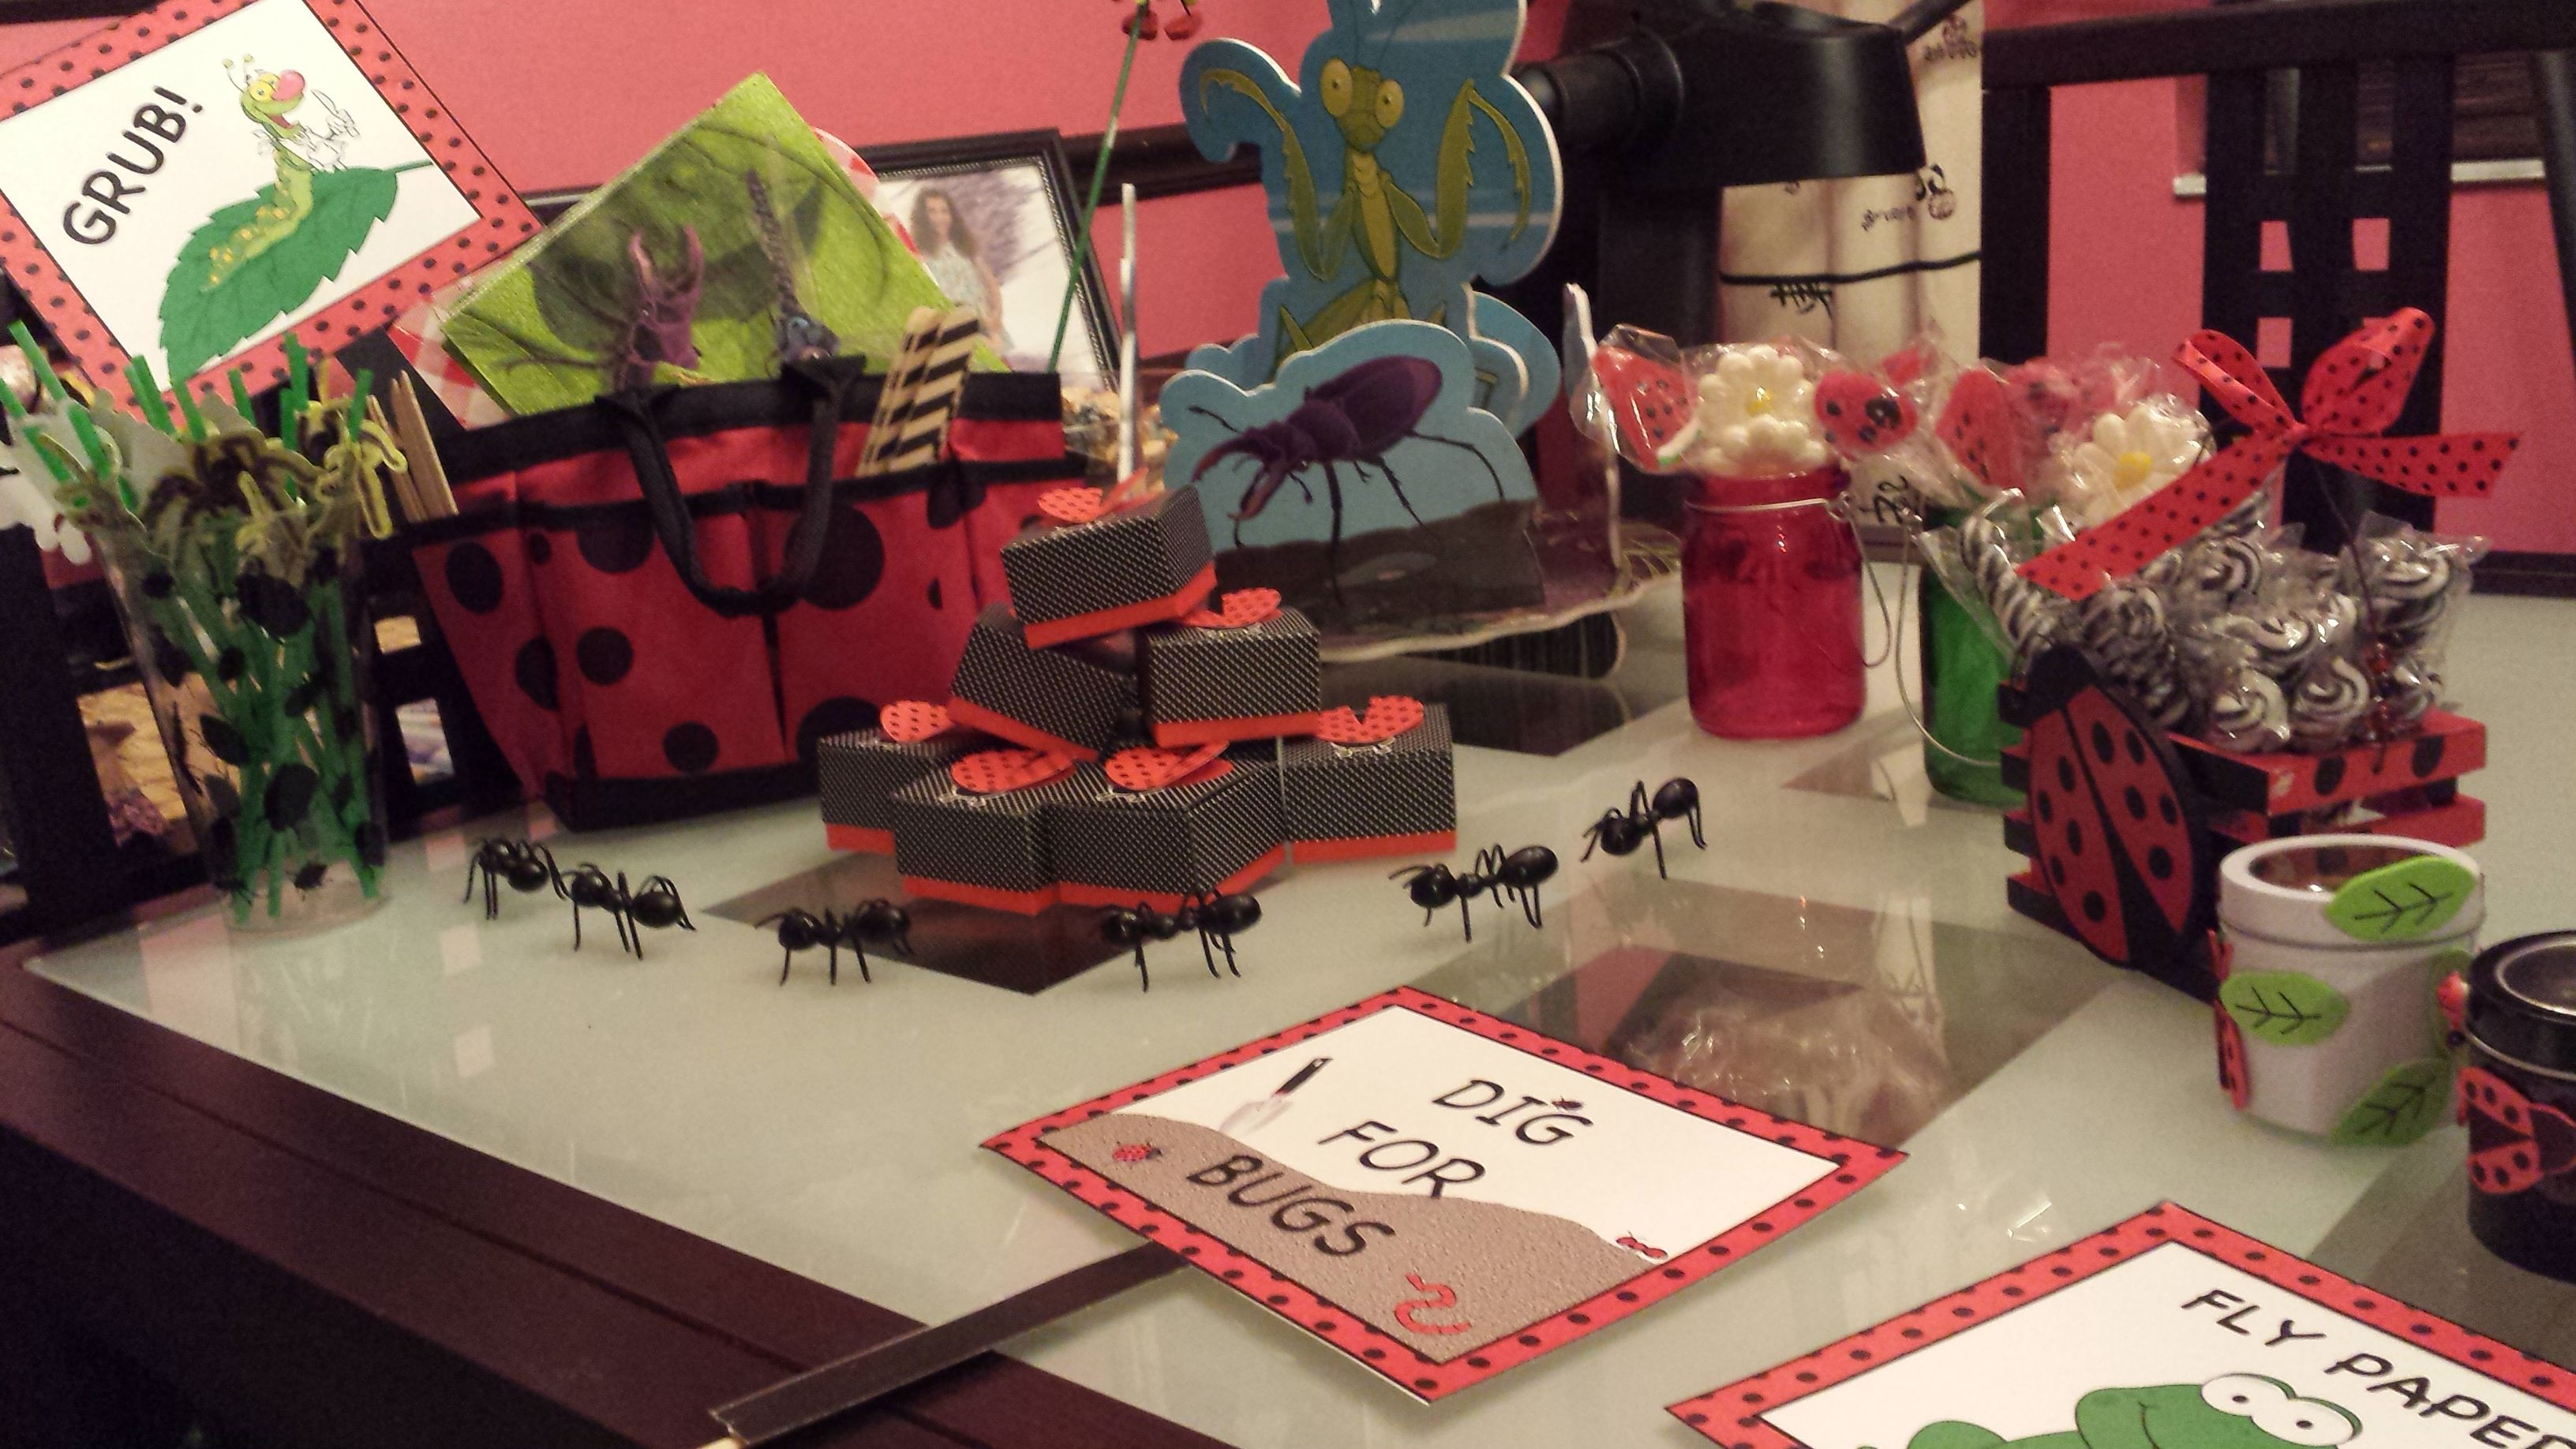 We placed Godiva chocolates in the ladybug boxes for the adults. They were stacked on a three teared cake stand.